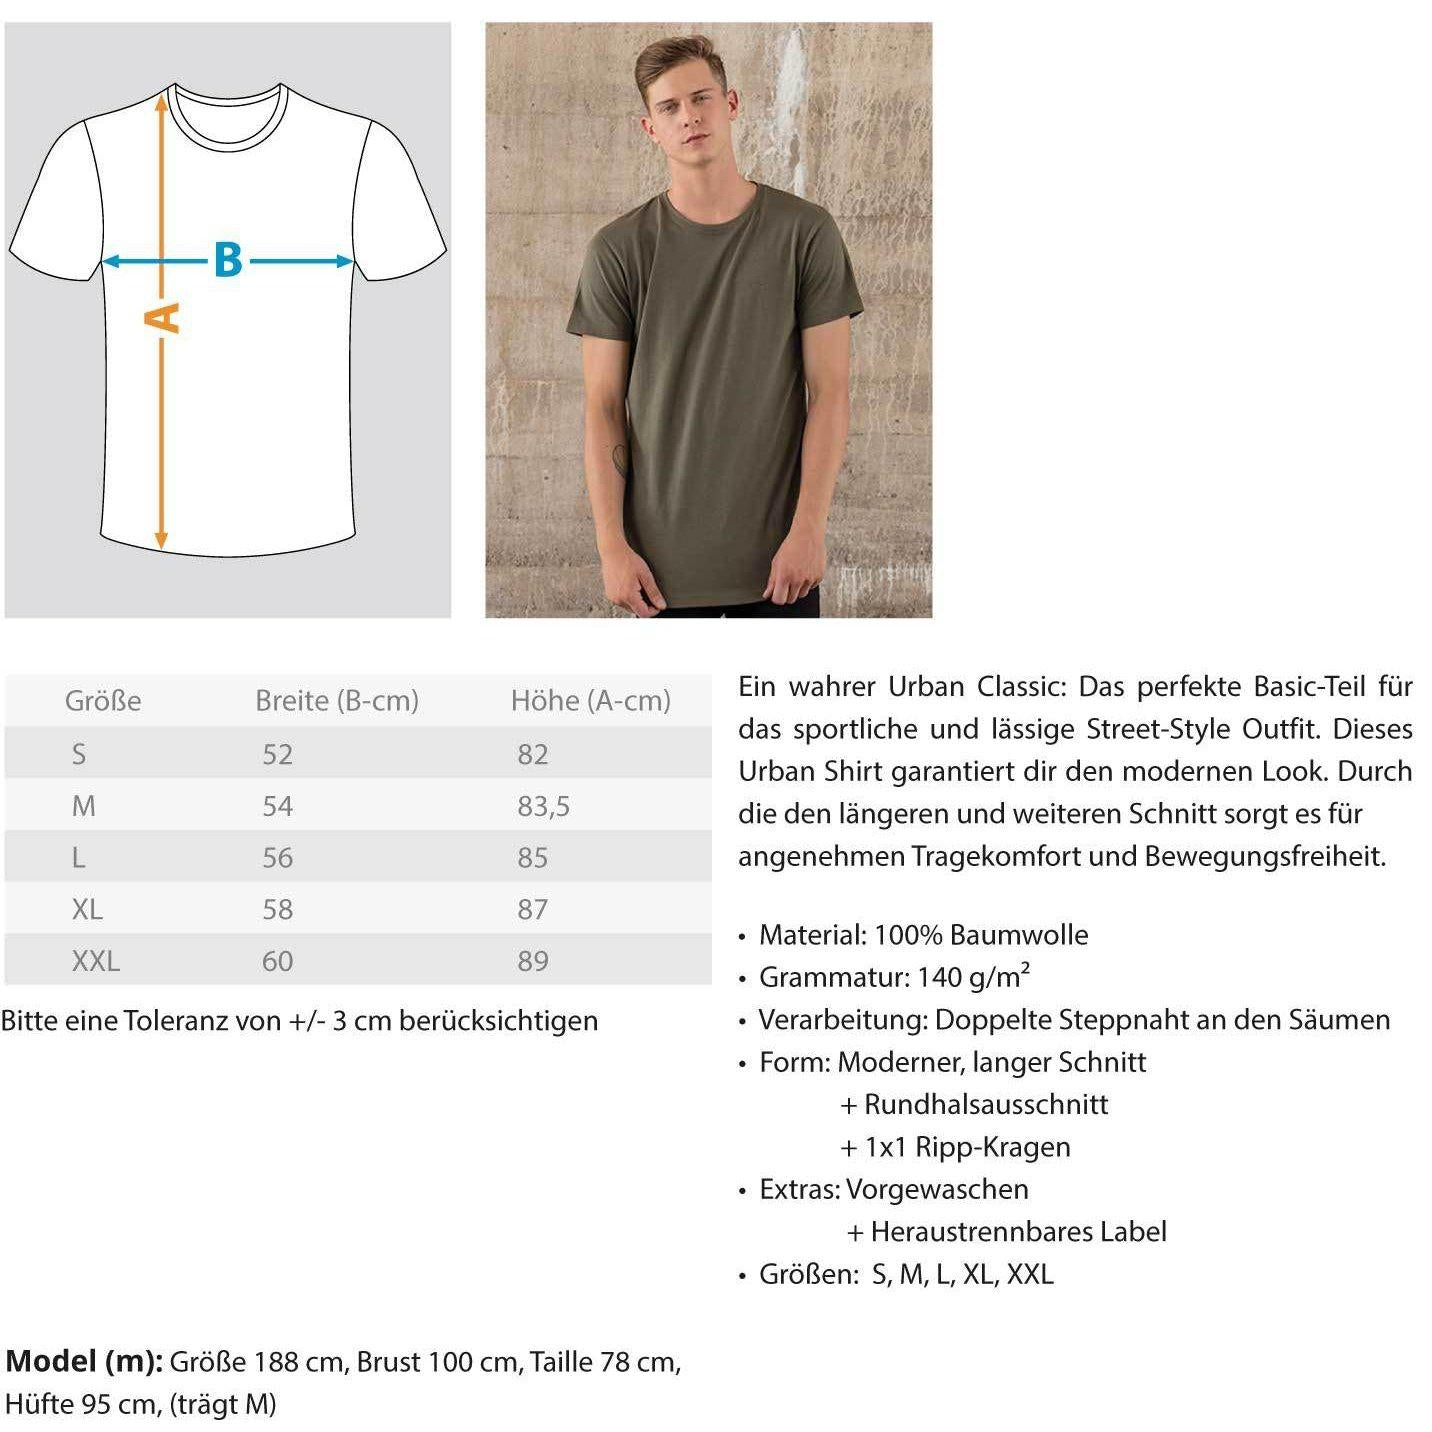 Techno Tempo White -Rave On!® - Herren Long Tee Men Long Tee - Rave On!® der Club & Techno Szene Shop für Coole Junge Mode Streetwear Style & Fashion Outfits + Sexy Festival 420 Stuff